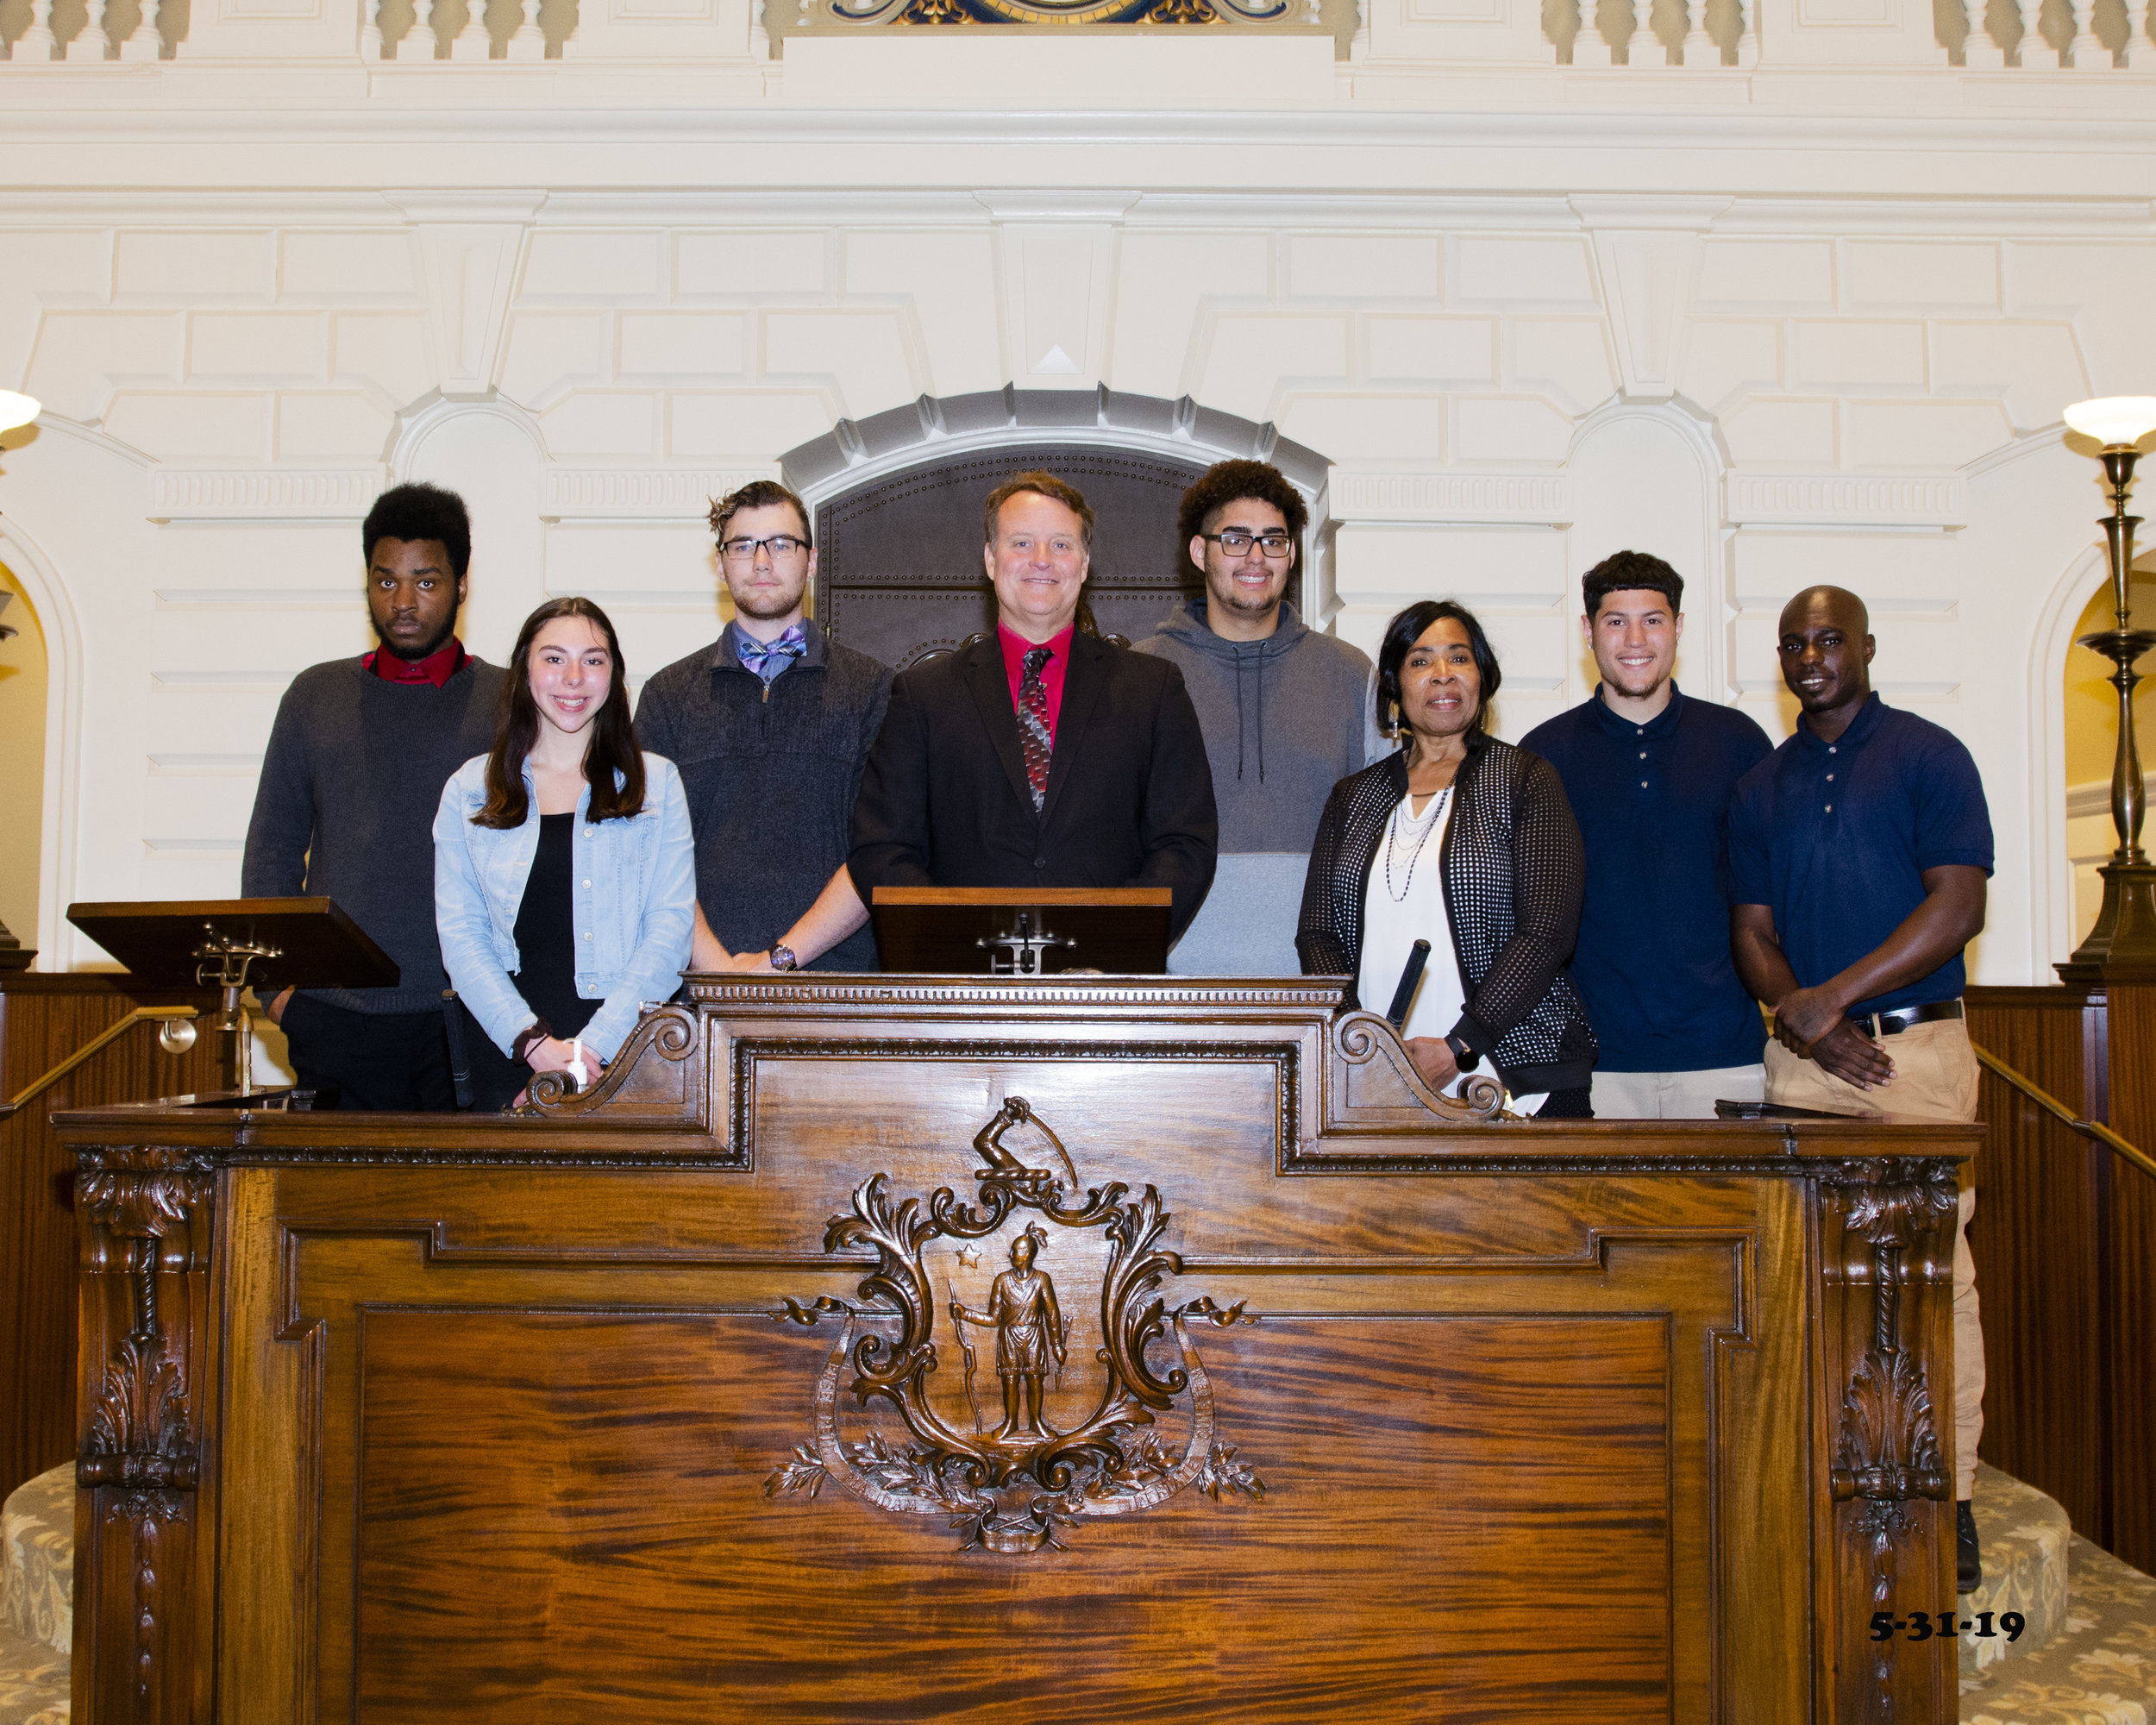 Senator Michael O. Moore (D-Millbury) with Recreation Coordinator Michelle Cook and students from the Grafton Jobs Corps on the rostrum of the Massachusetts Senate.